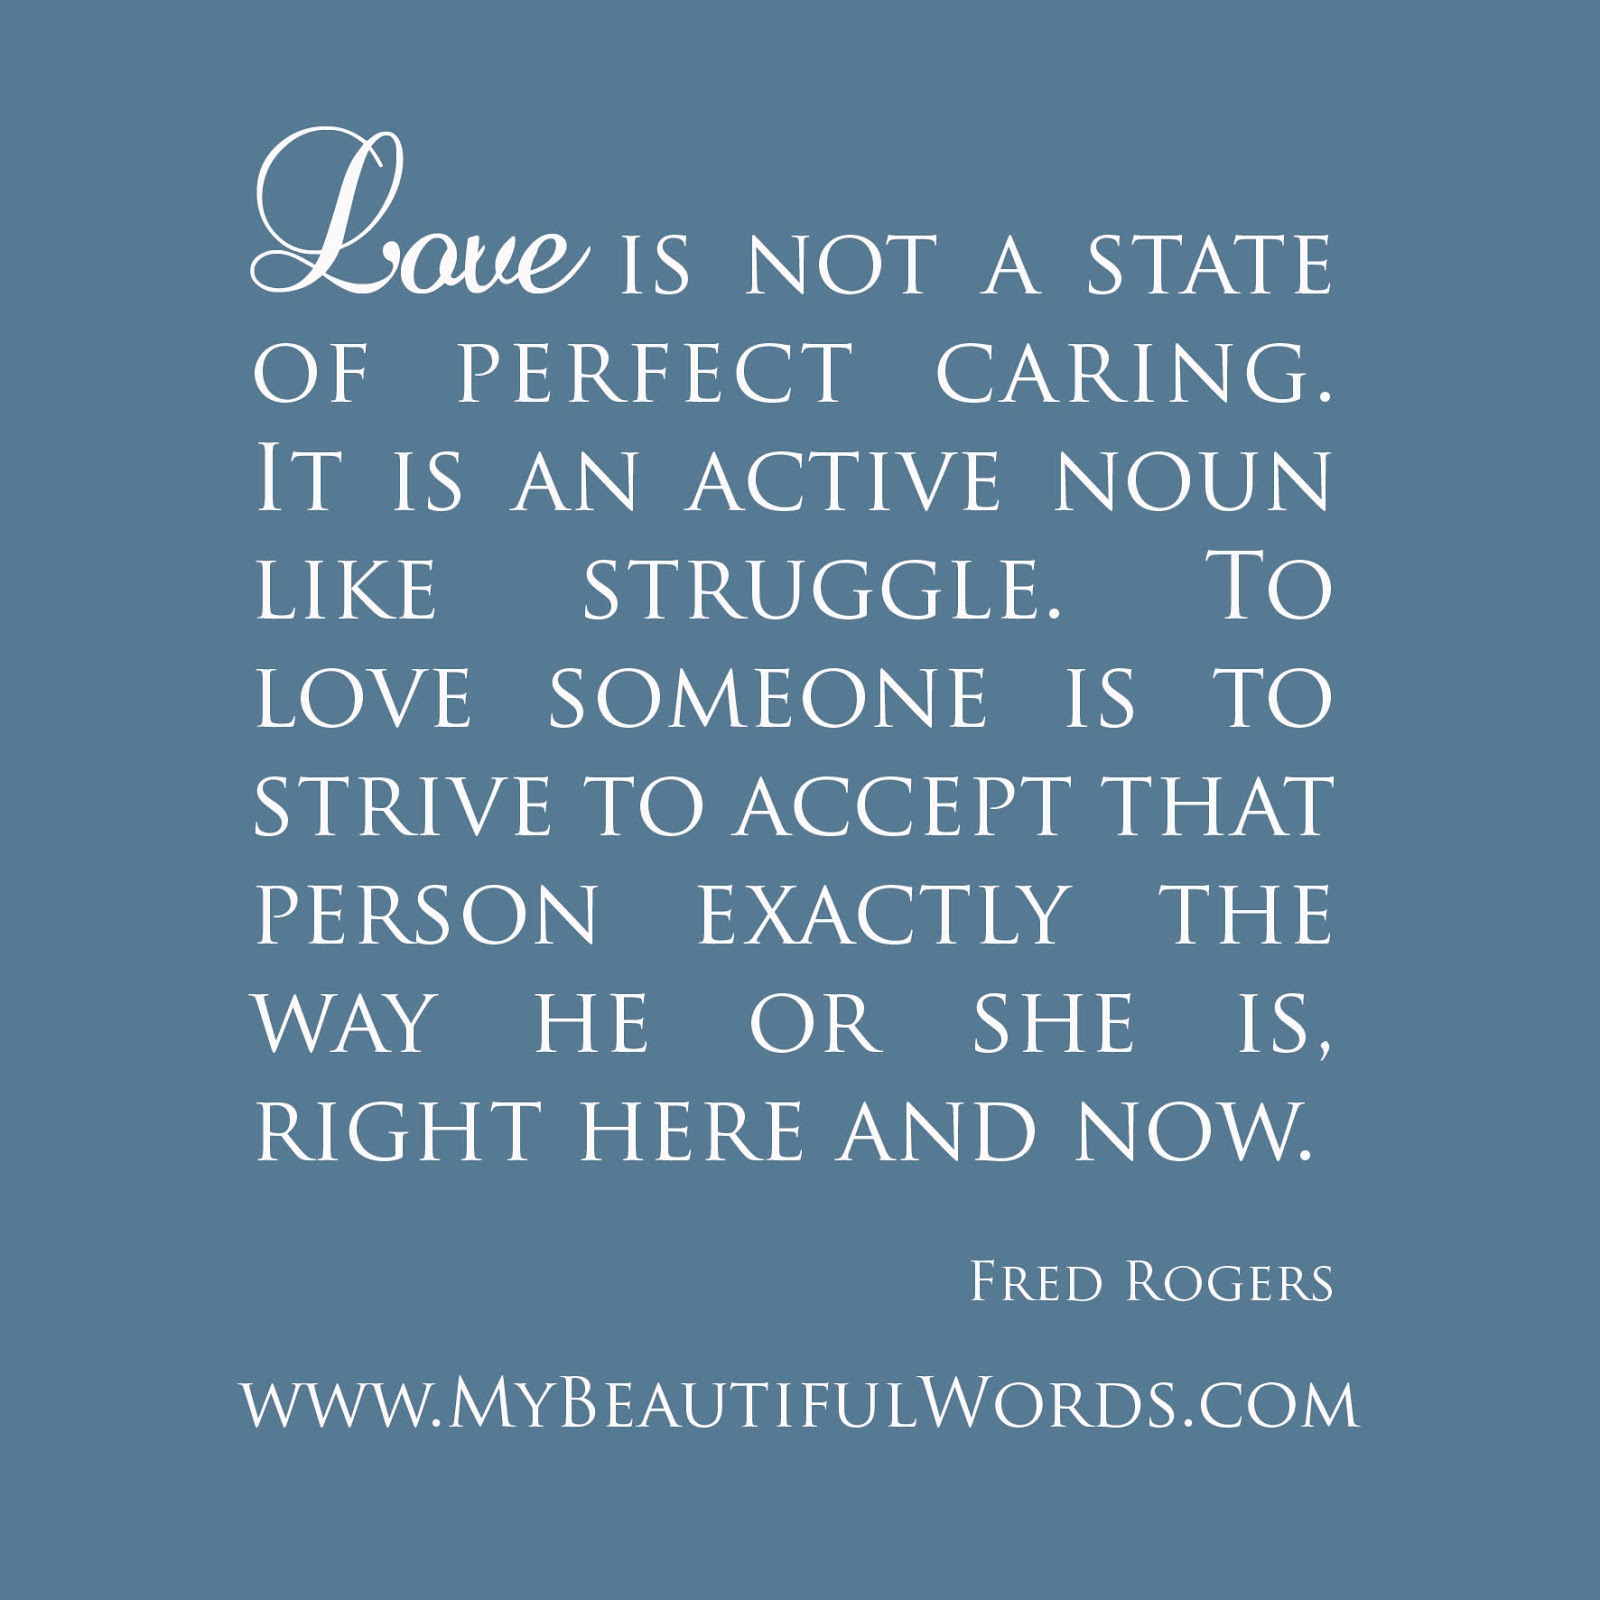 Quotes About Love Relationships: Will Rogers Quotes Love. QuotesGram